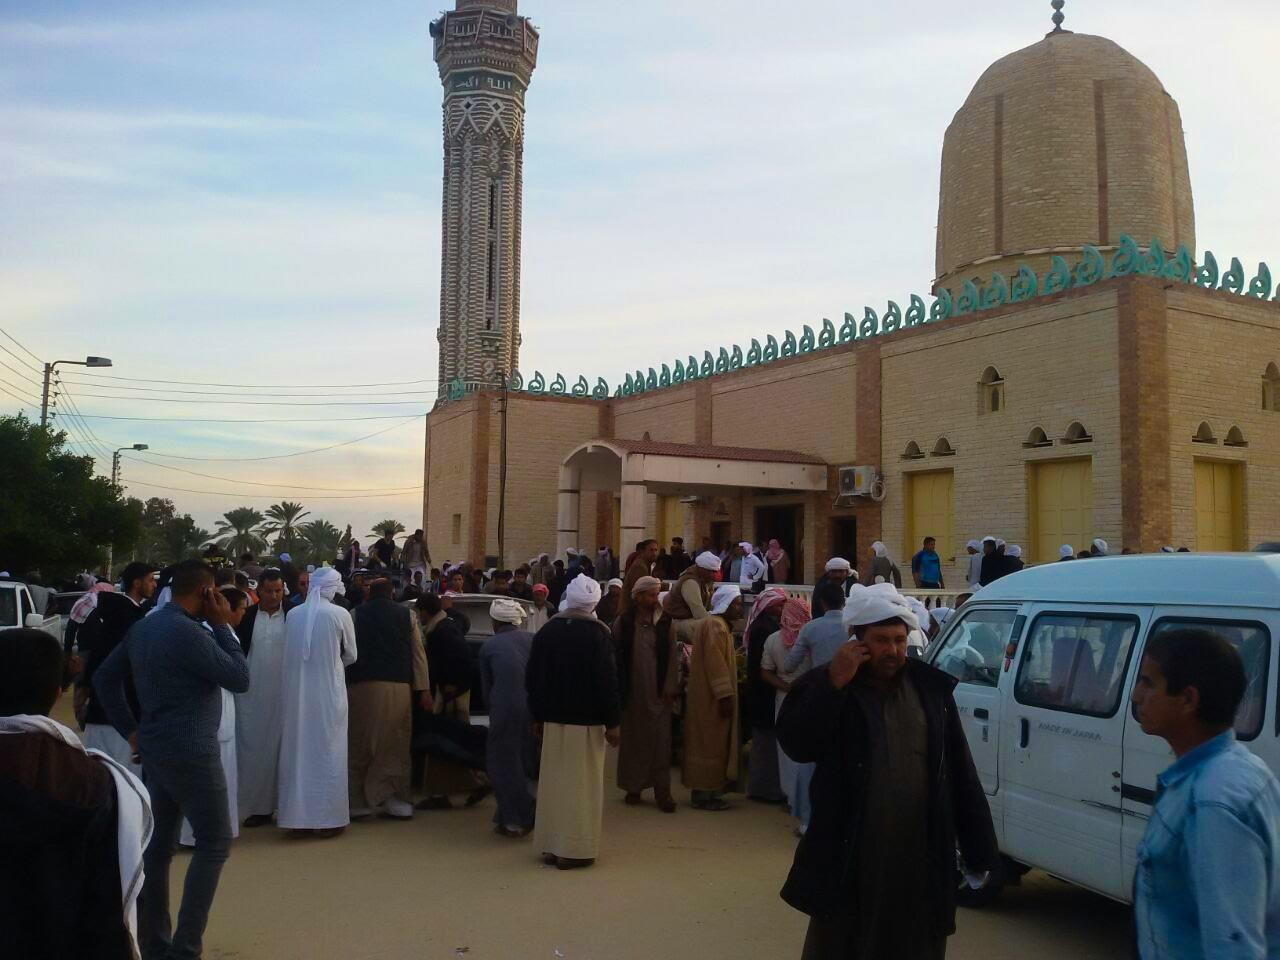 <p>People gather at the site of the Egypt Sinai mosque bombing in Al-Arish, Egypt on Nov. 24, 2017. (Photo: Stringer/Anadolu Agency/Getty Images) </p>